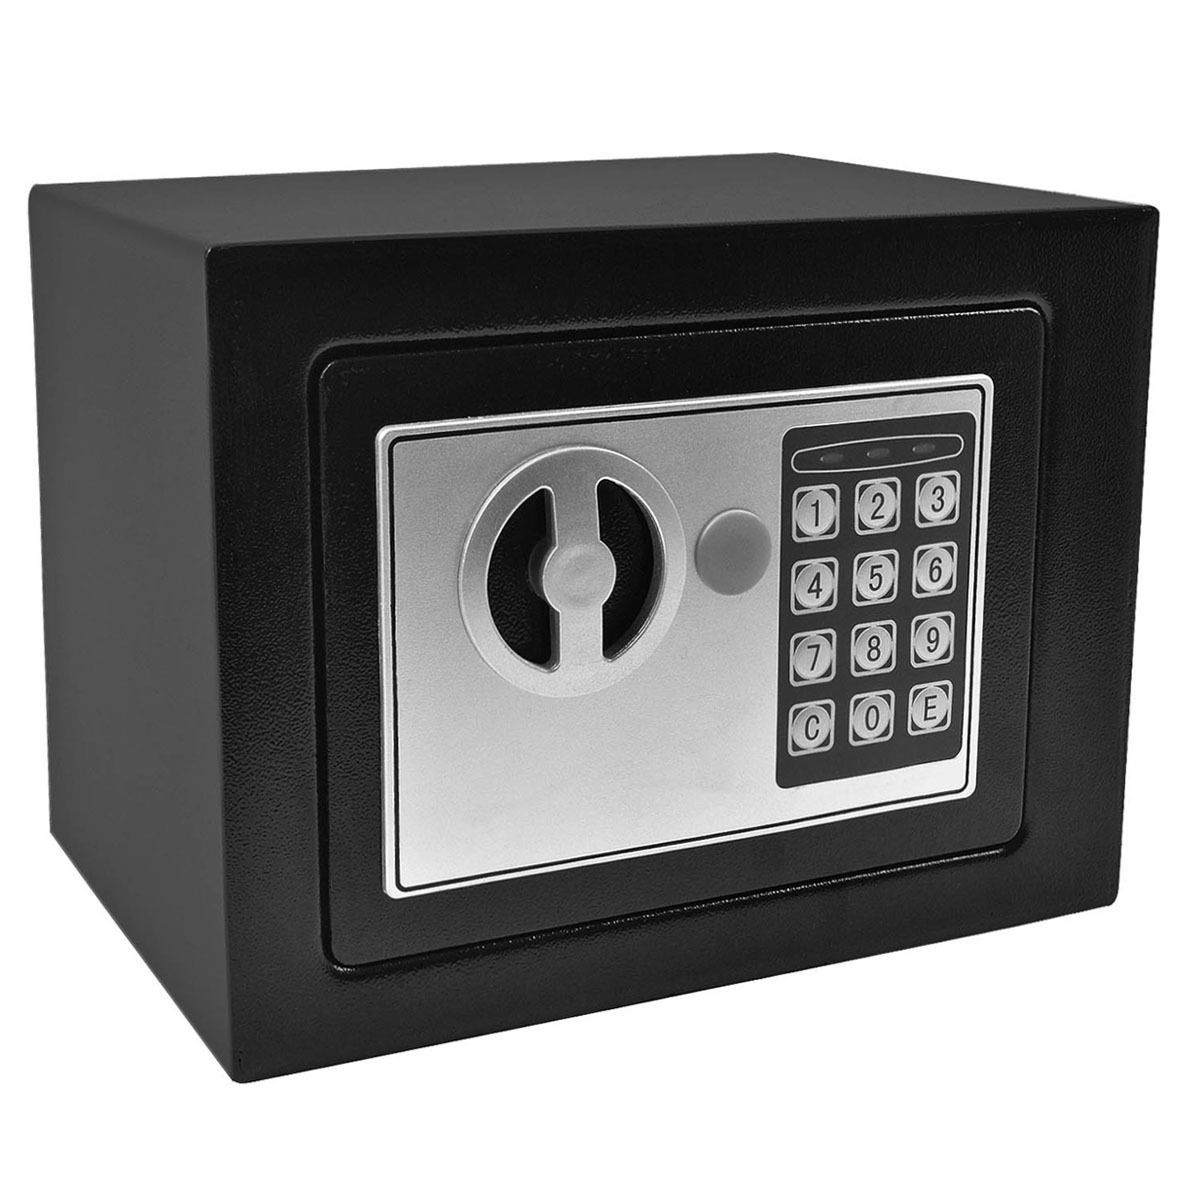 Small Digital Electronic Safe Box Keypad Lock Home Office Hotel Gun 2 Color New Black